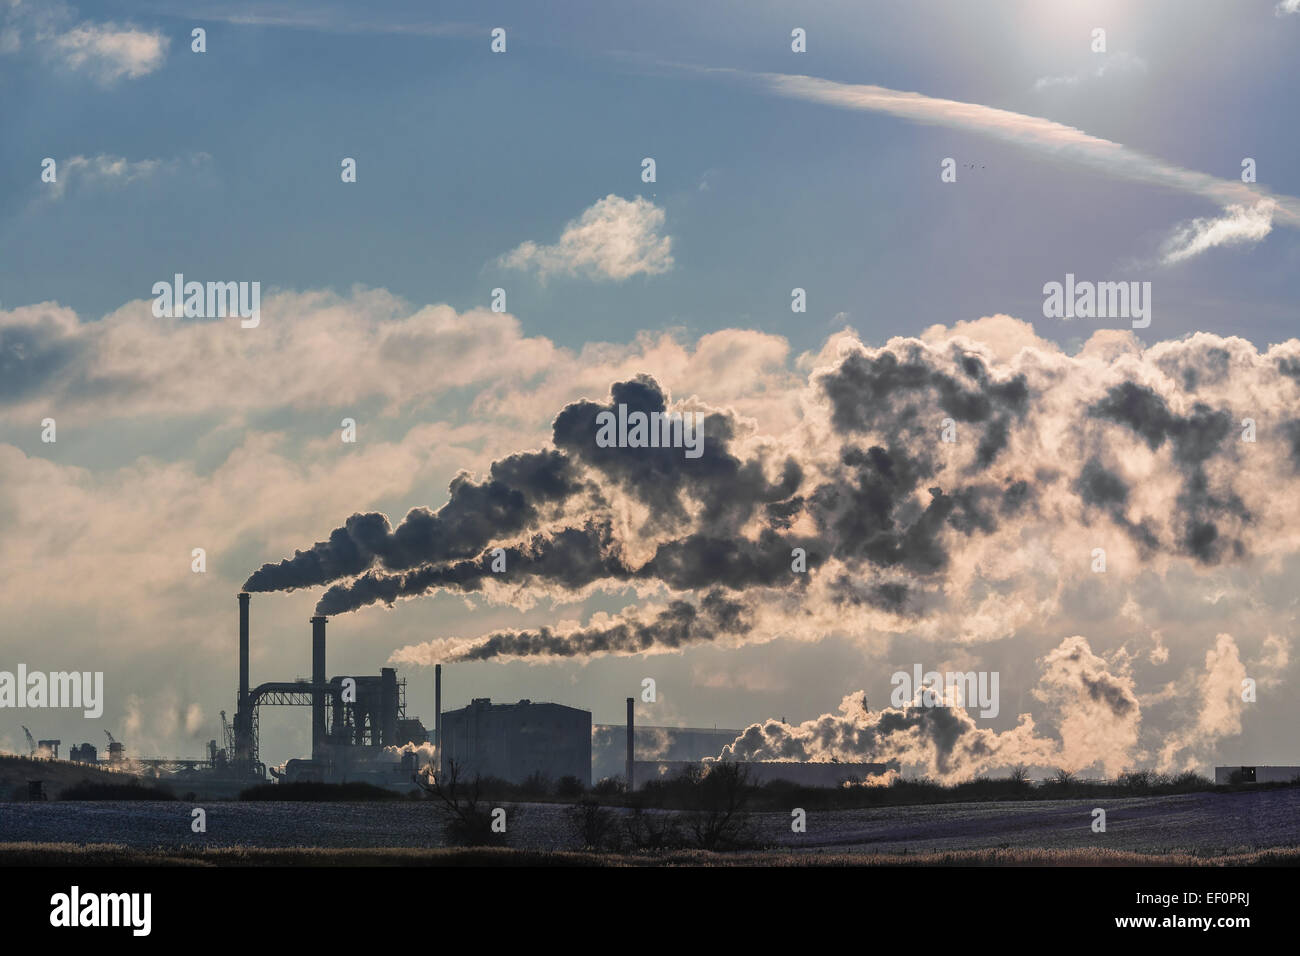 View to an industrial area in Wismar (Germany). - Stock Image